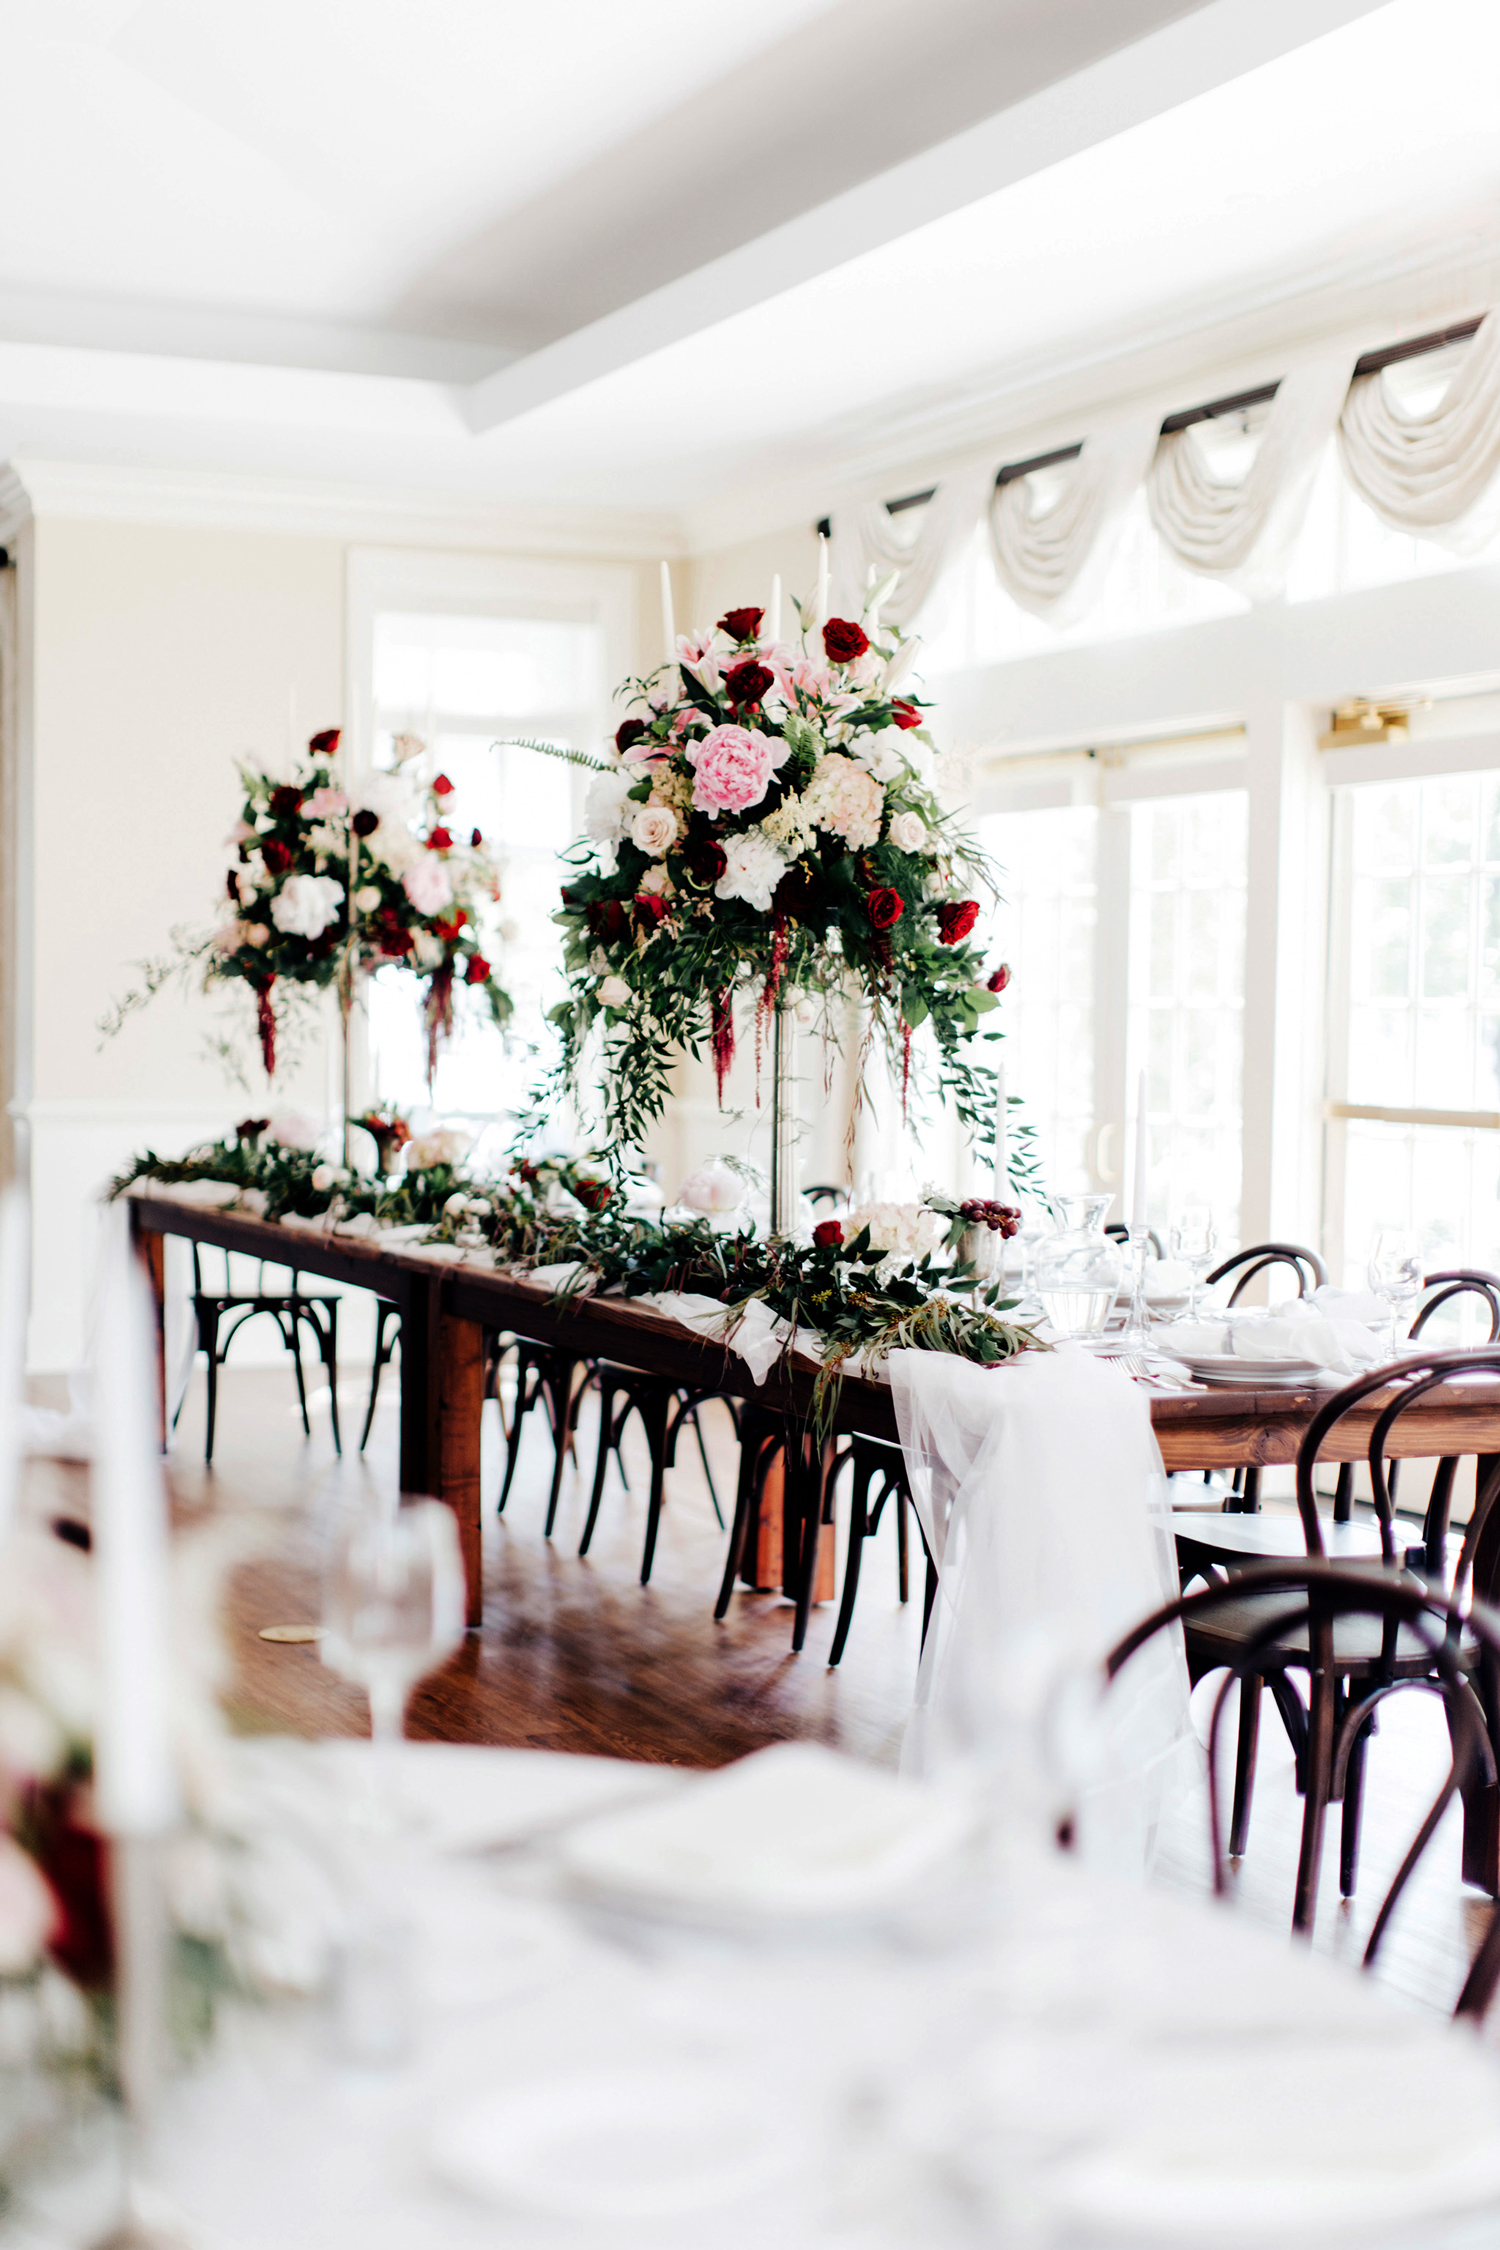 Downton Abbey-inspired venue decor